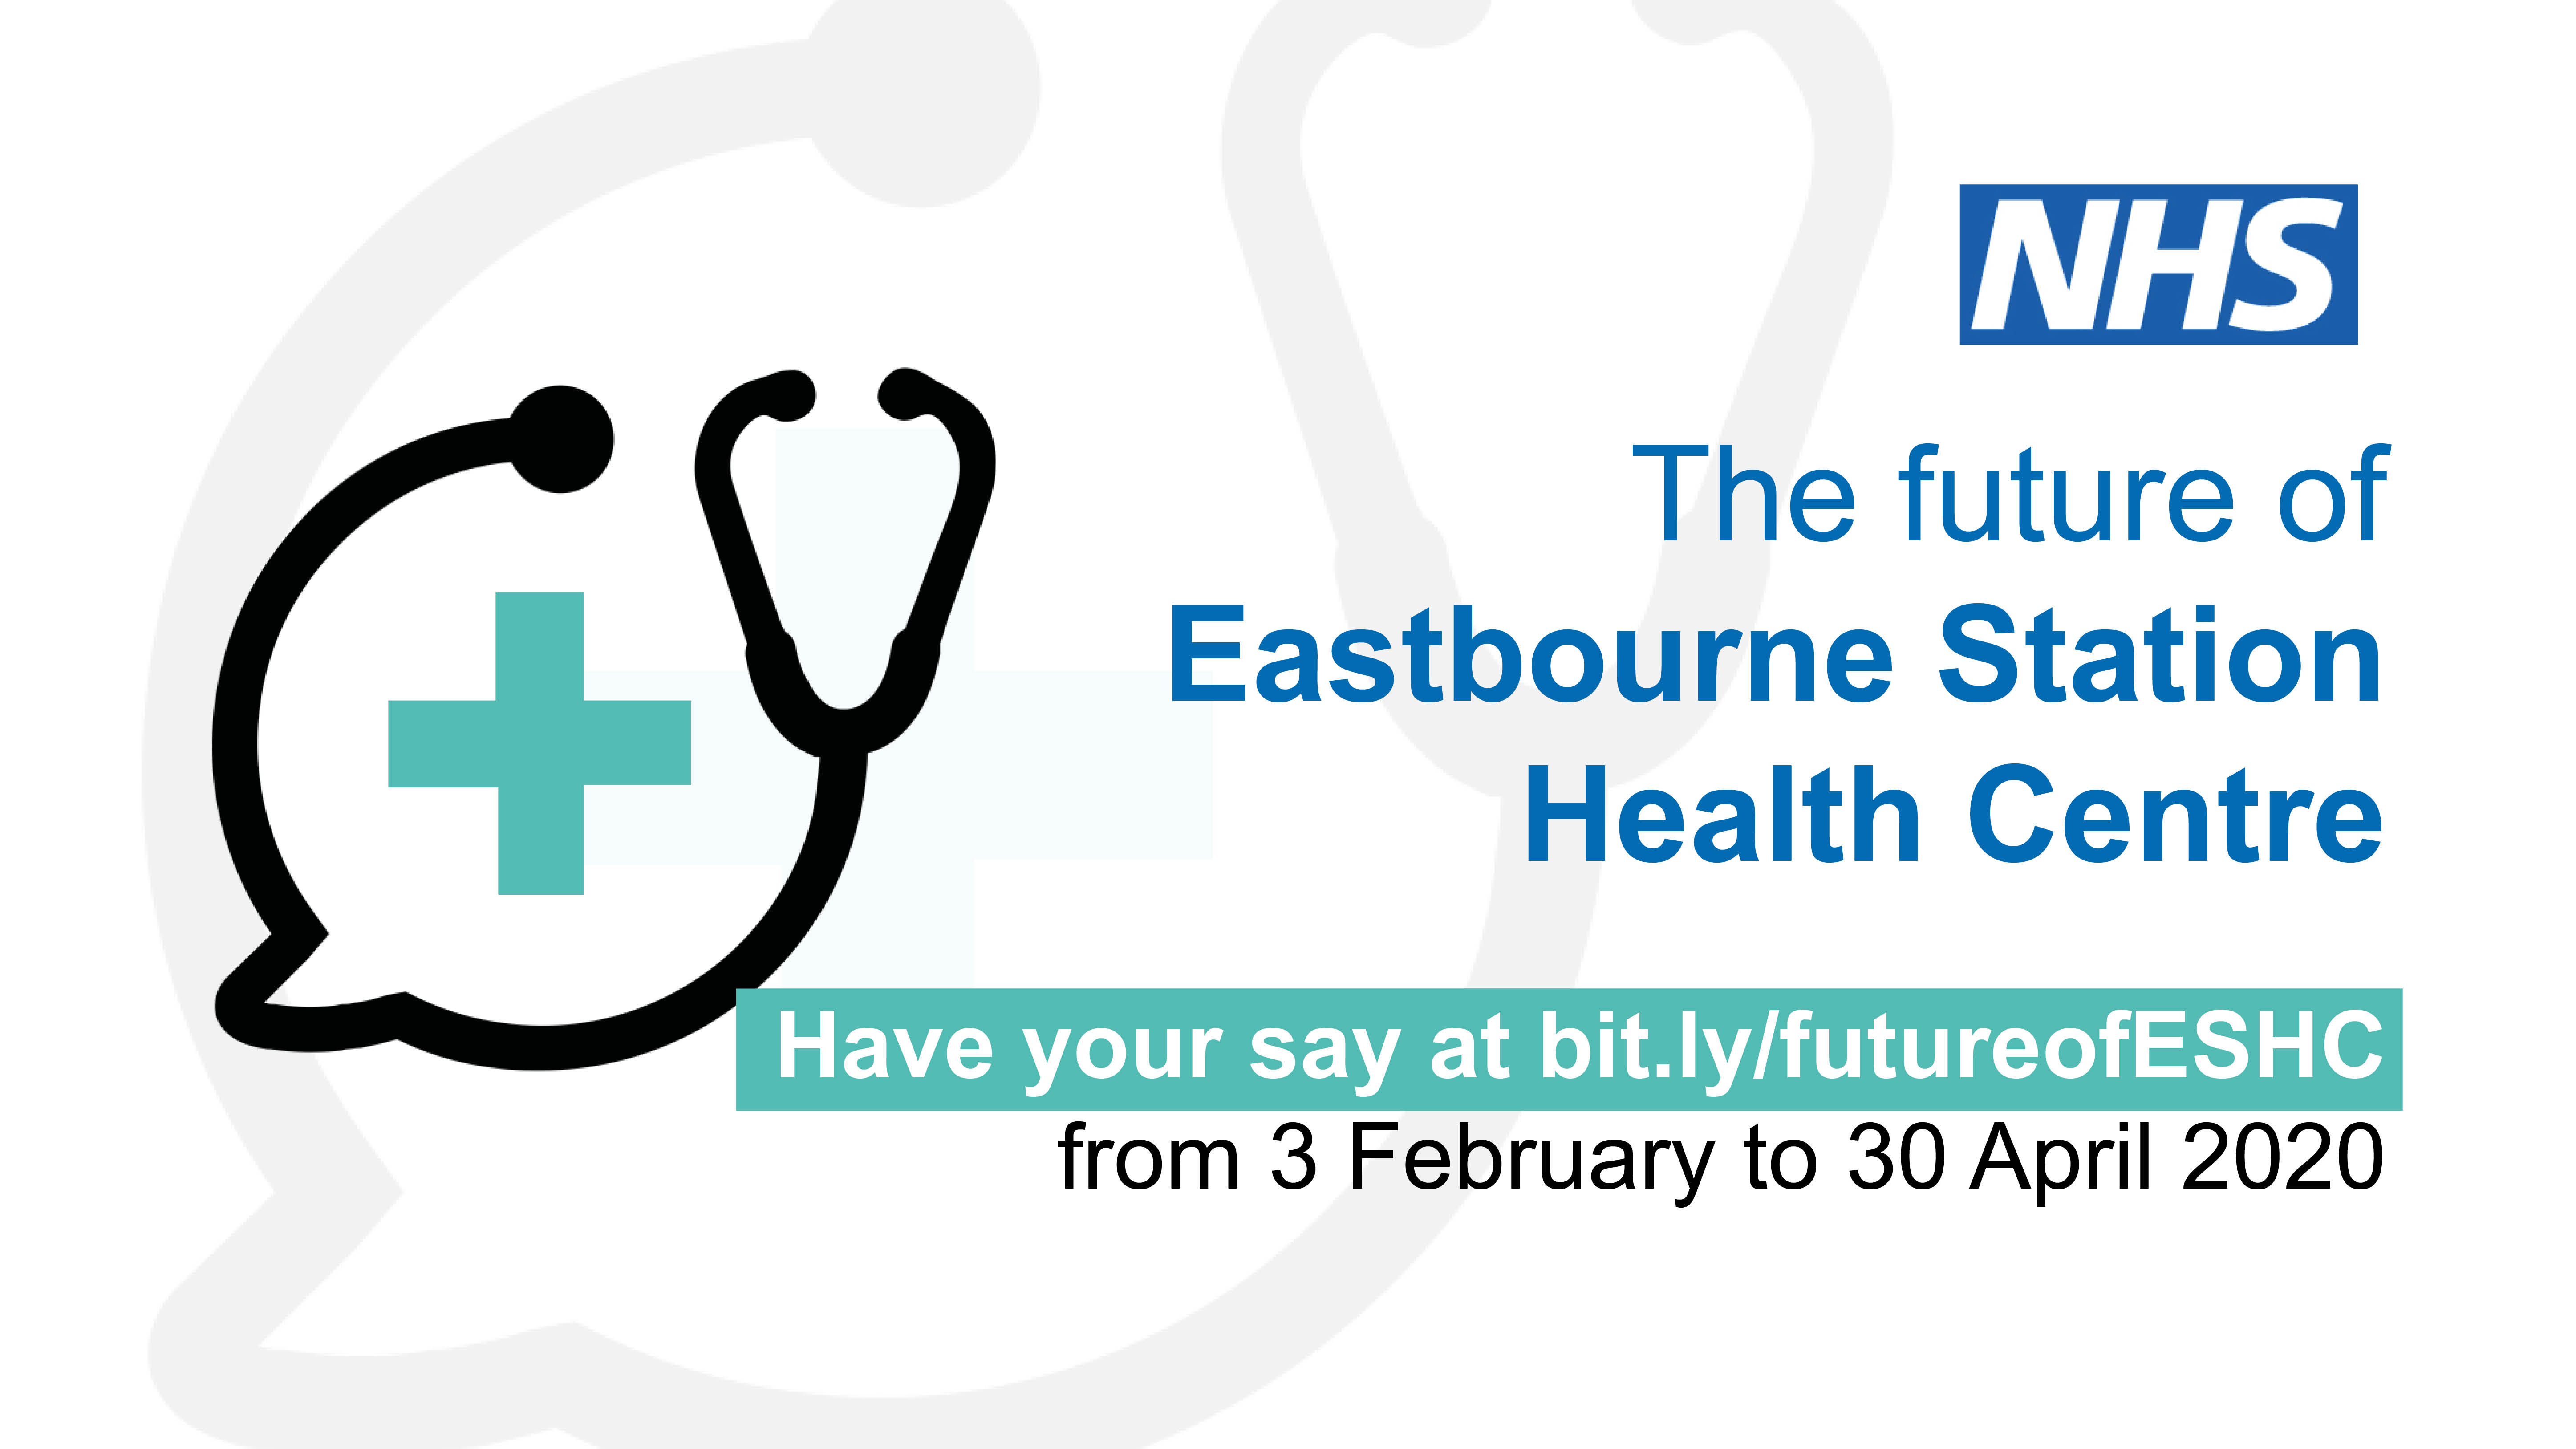 The future of Eastbourne Station Health Centre.  Have your say at bit.ly/futureofeshc from 3 february to 30 april 2020